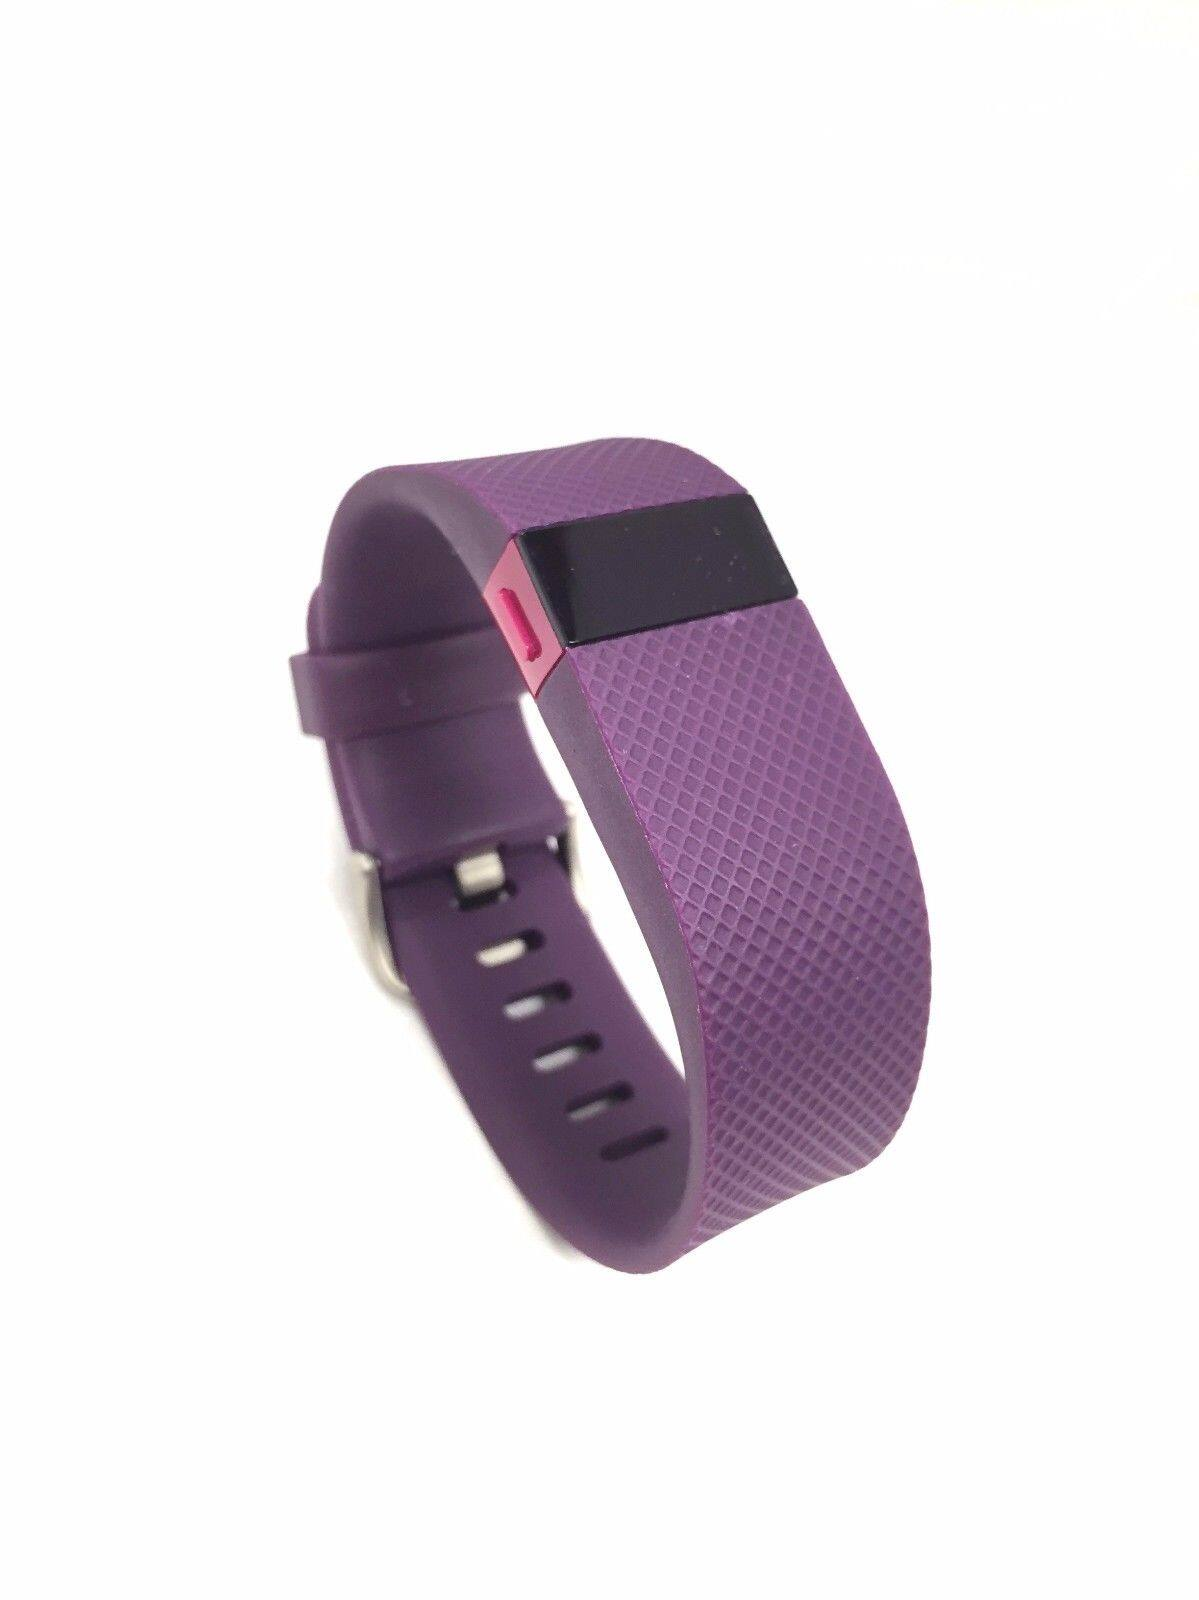 Fitbit Charge HR Activity, Heart Rate + Sleep Wristband (New, Other)  $86 + Free Shipping